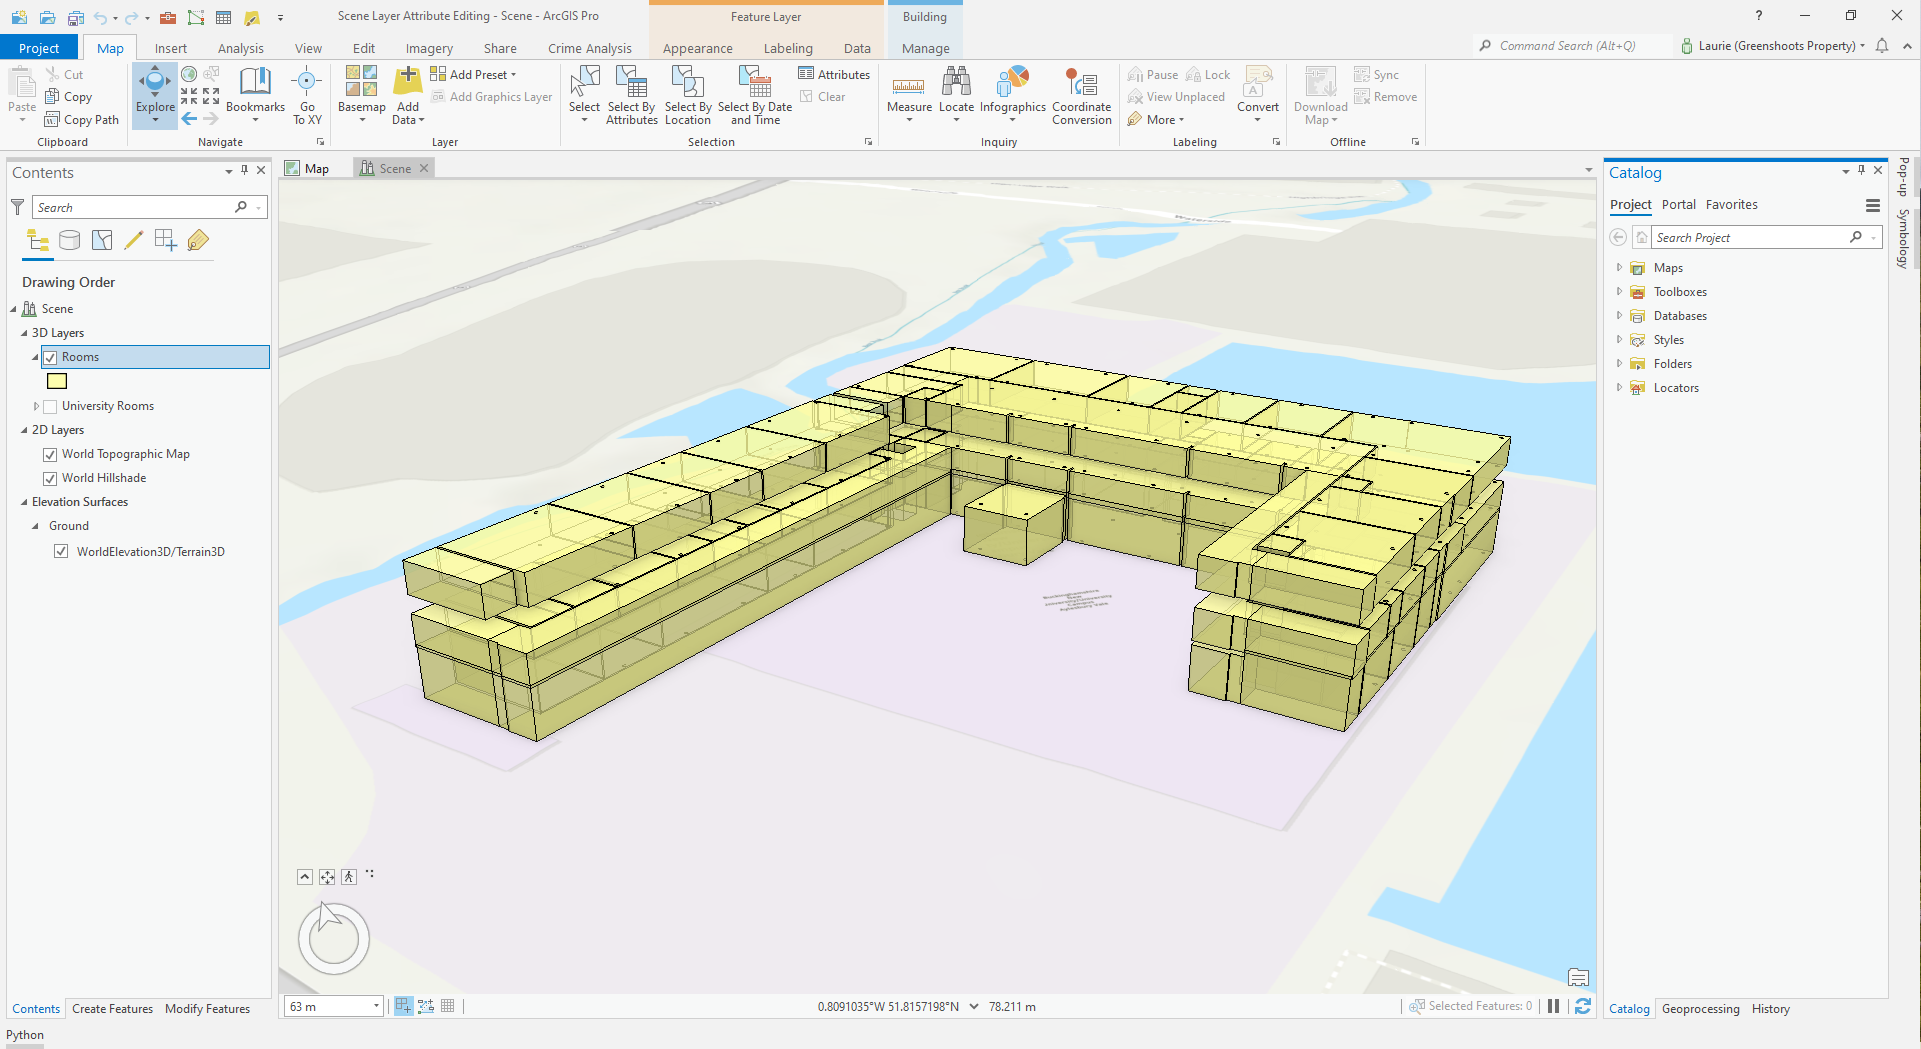 ArcGIS Pro Scene showing room spaces in a building.